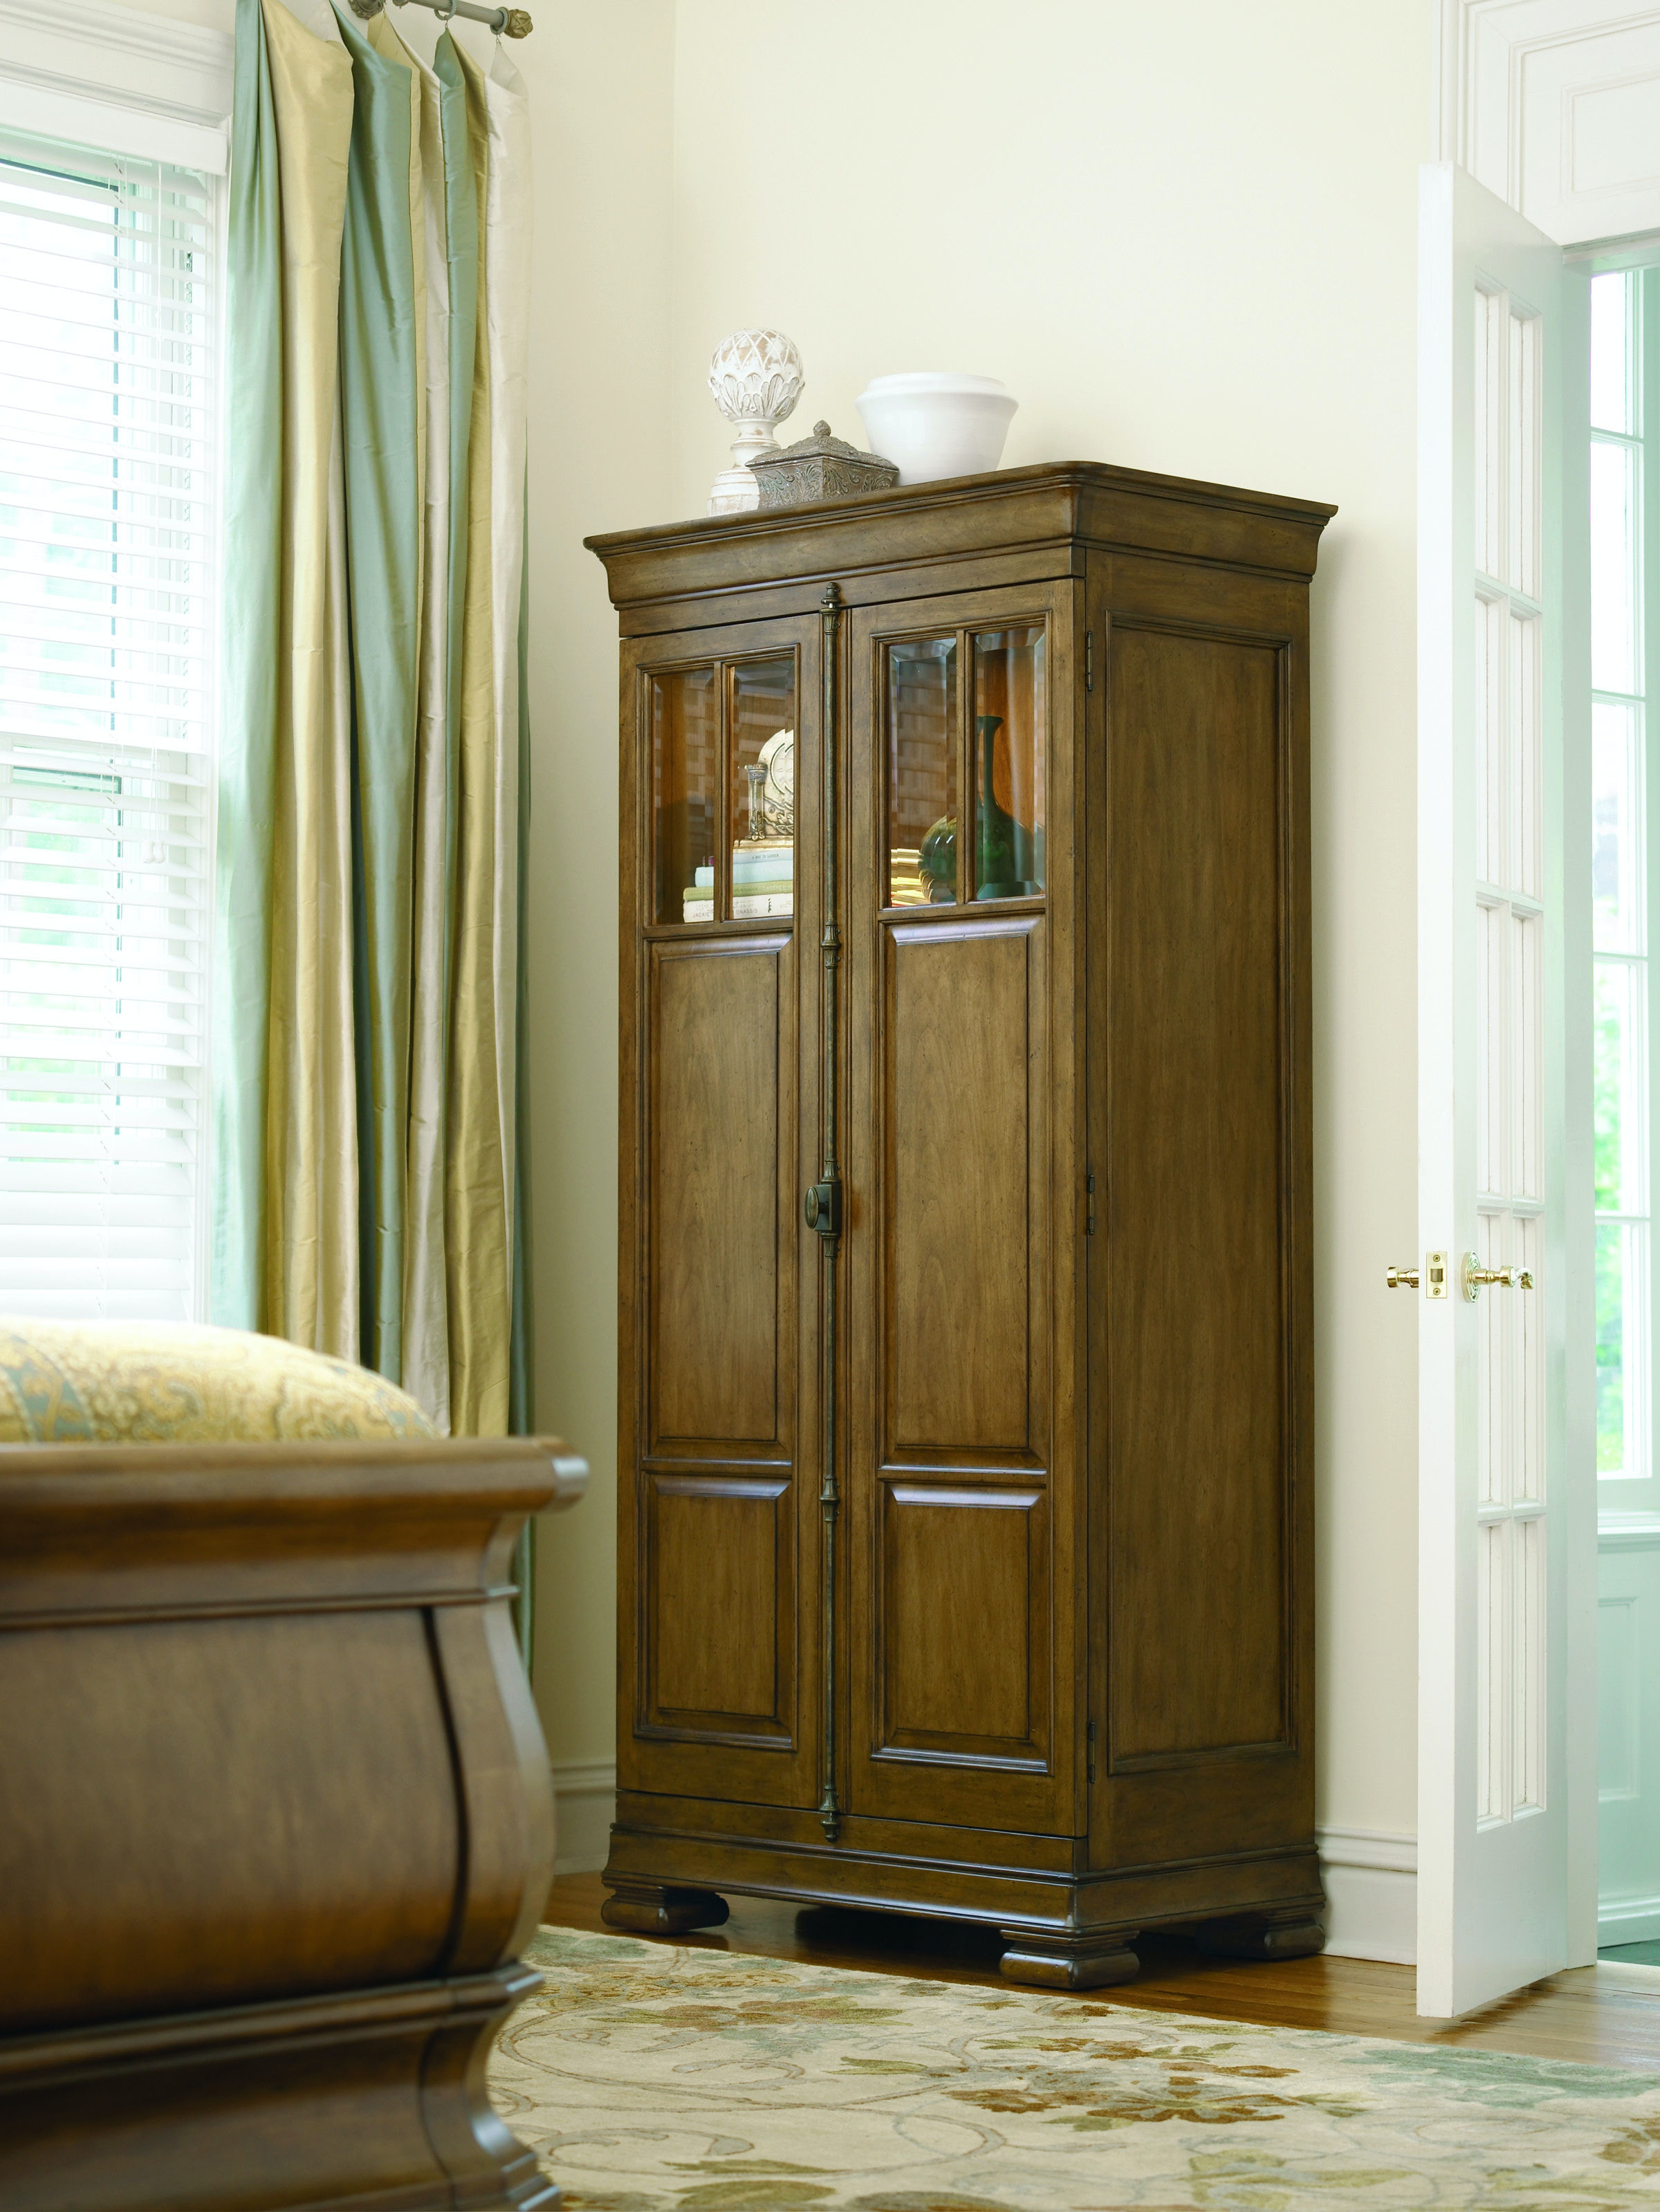 Universal Furniture Bedroom Tall Cabinet 071160   Stacy Furniture    Grapevine, Allen, Plano And Flower Mound, Texas